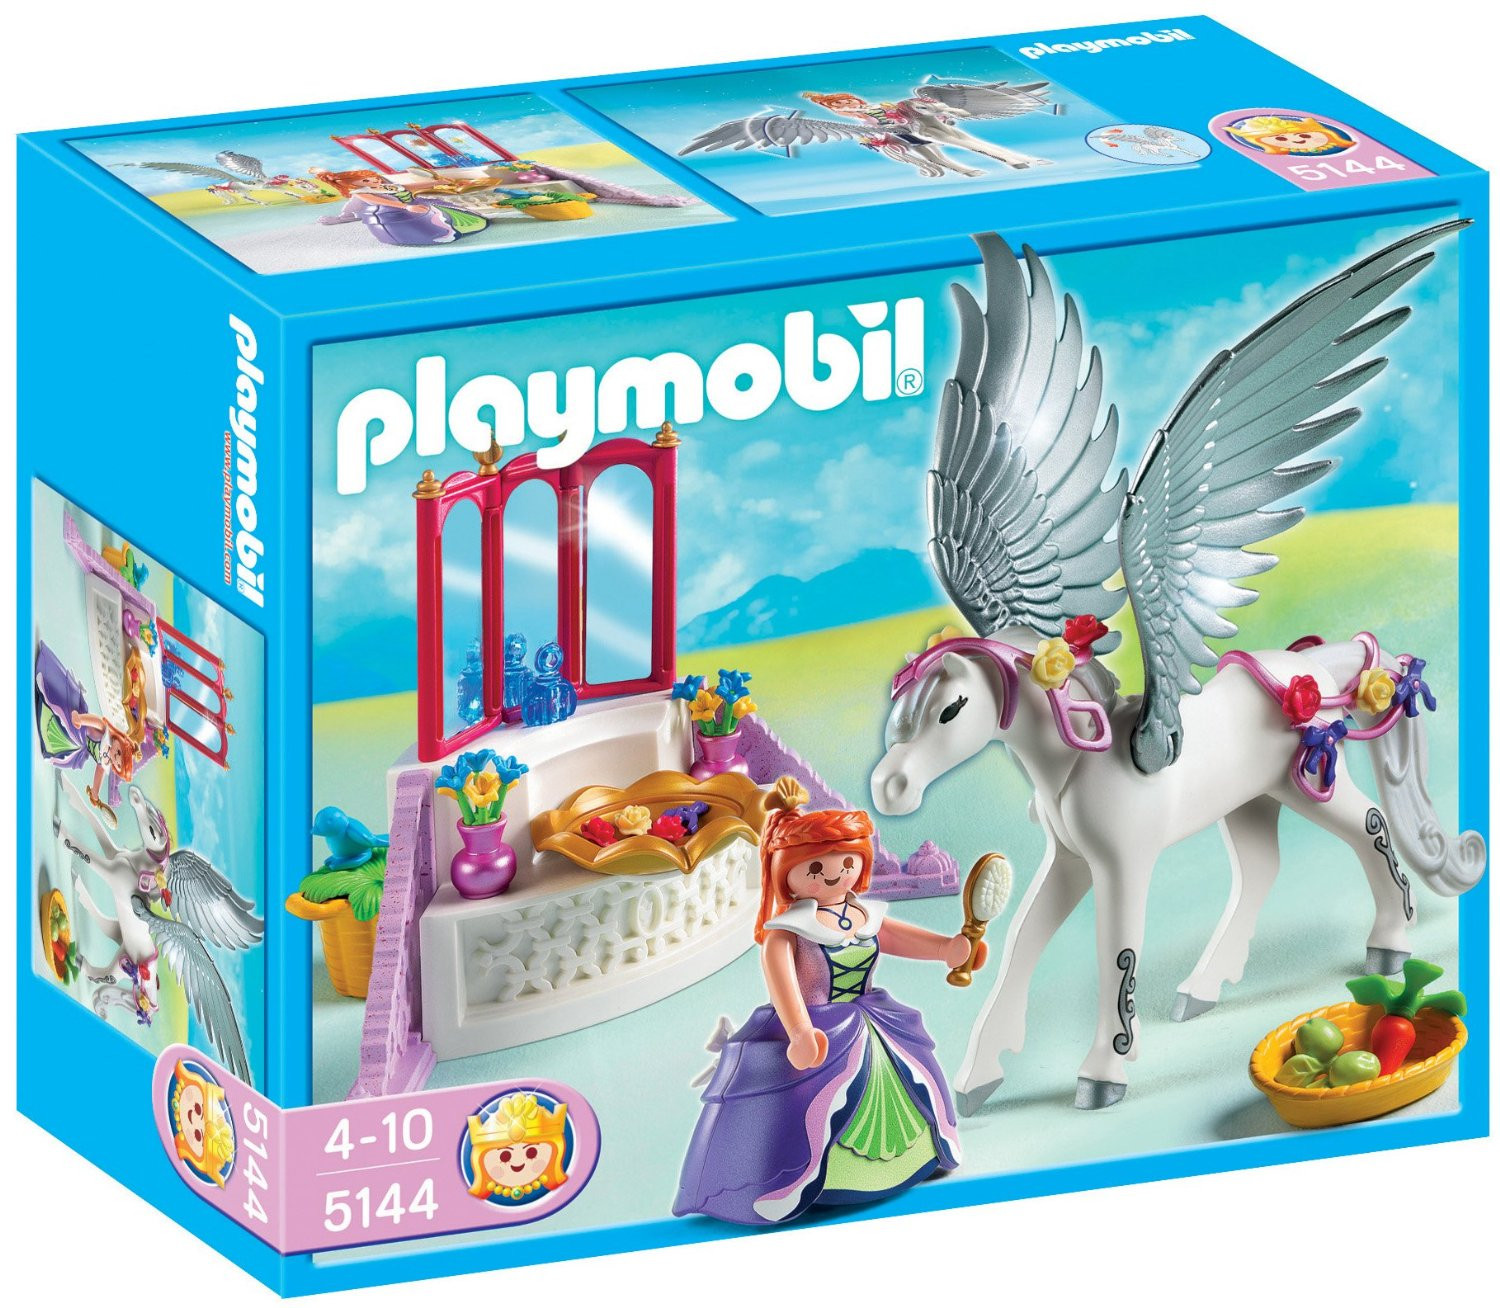 Playmobil Princess Pegasus with Vanity Station